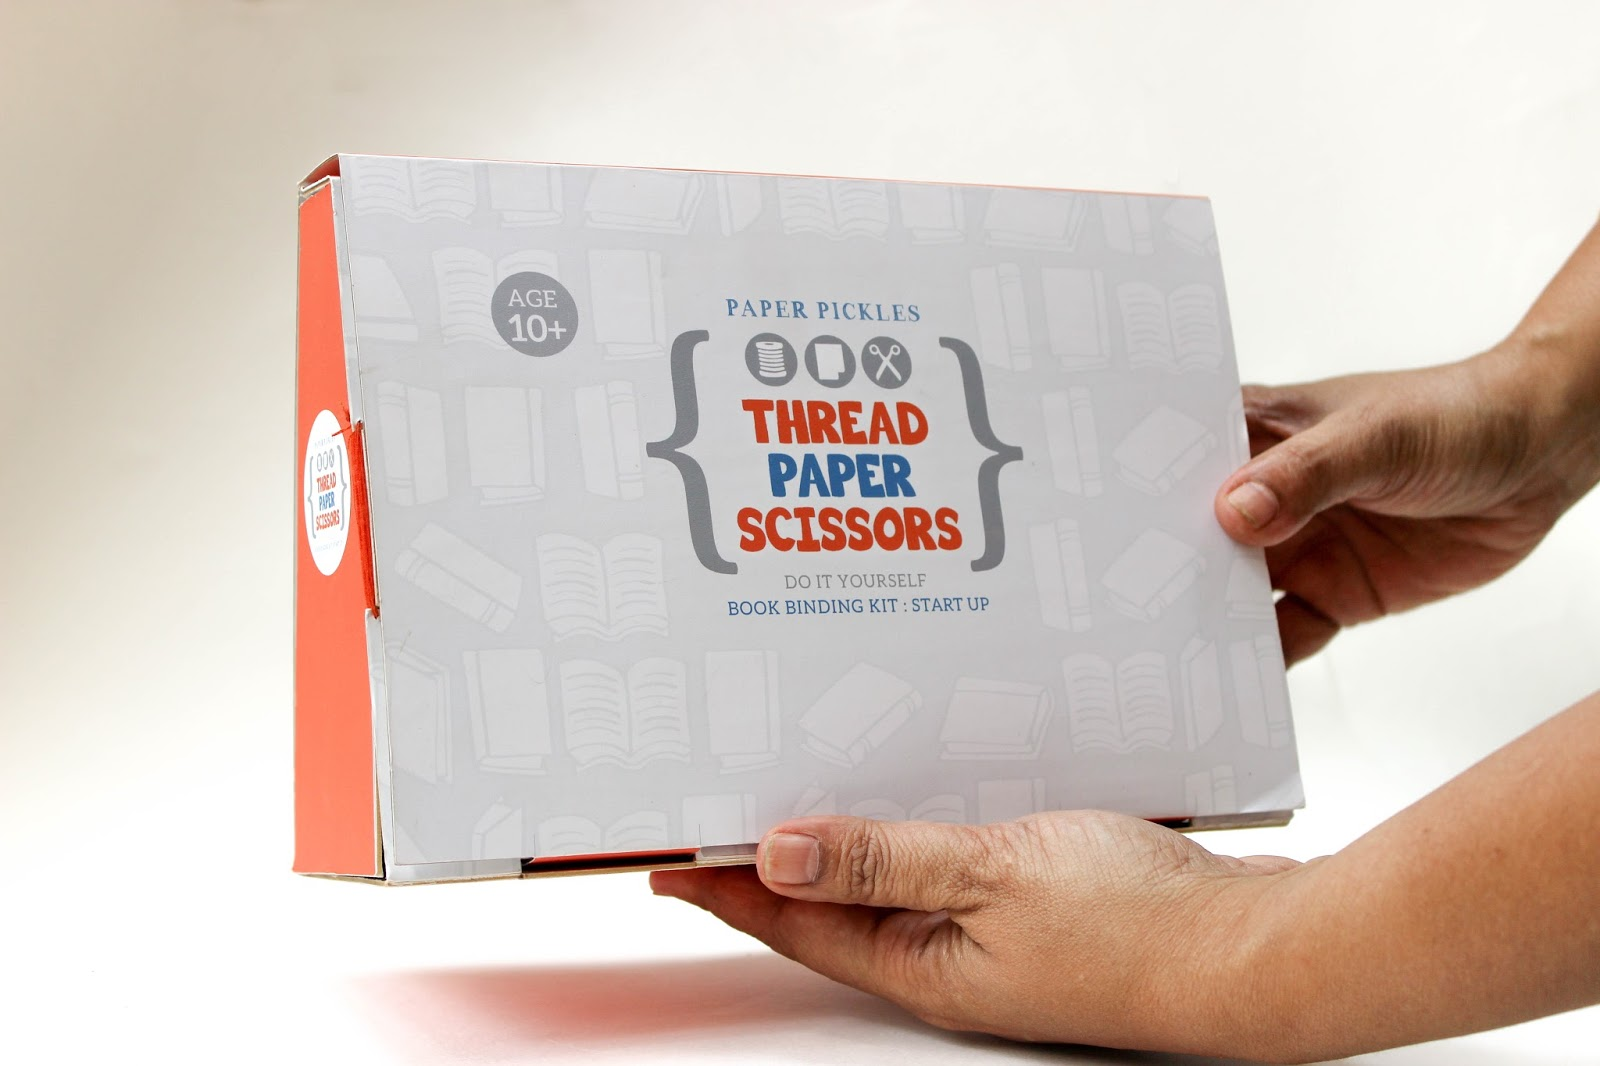 Thread paper scissors book binding kit student project on so here you gohappy binding to you solutioingenieria Choice Image